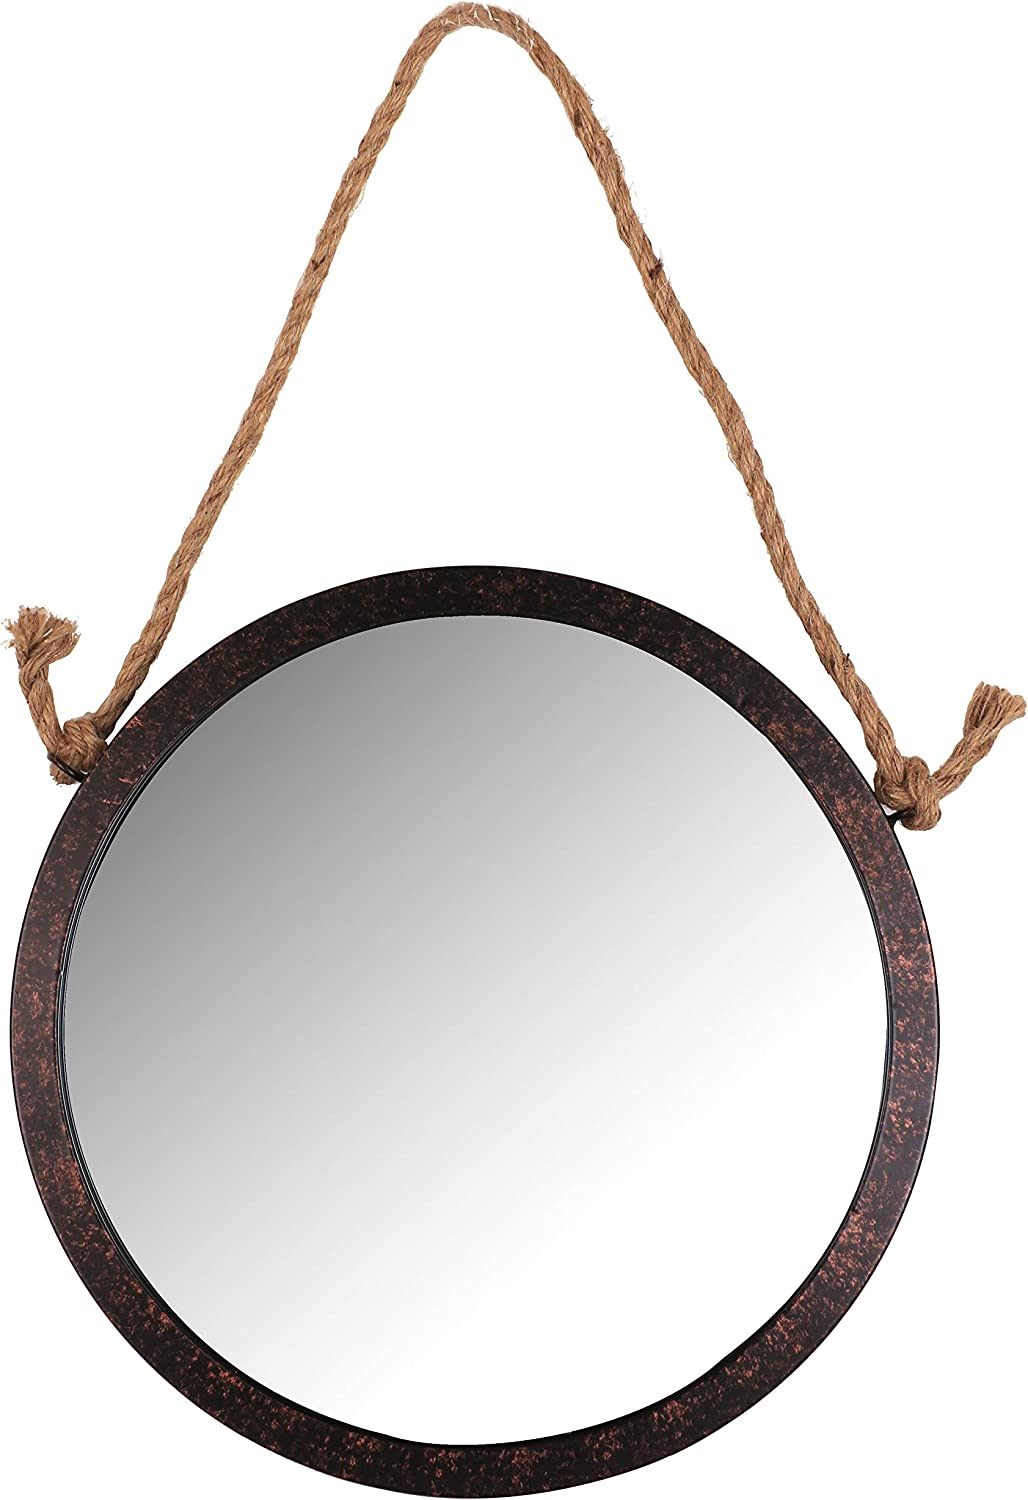 Framed Decorative 15″ Diameter Round Rope Hanging Mirror